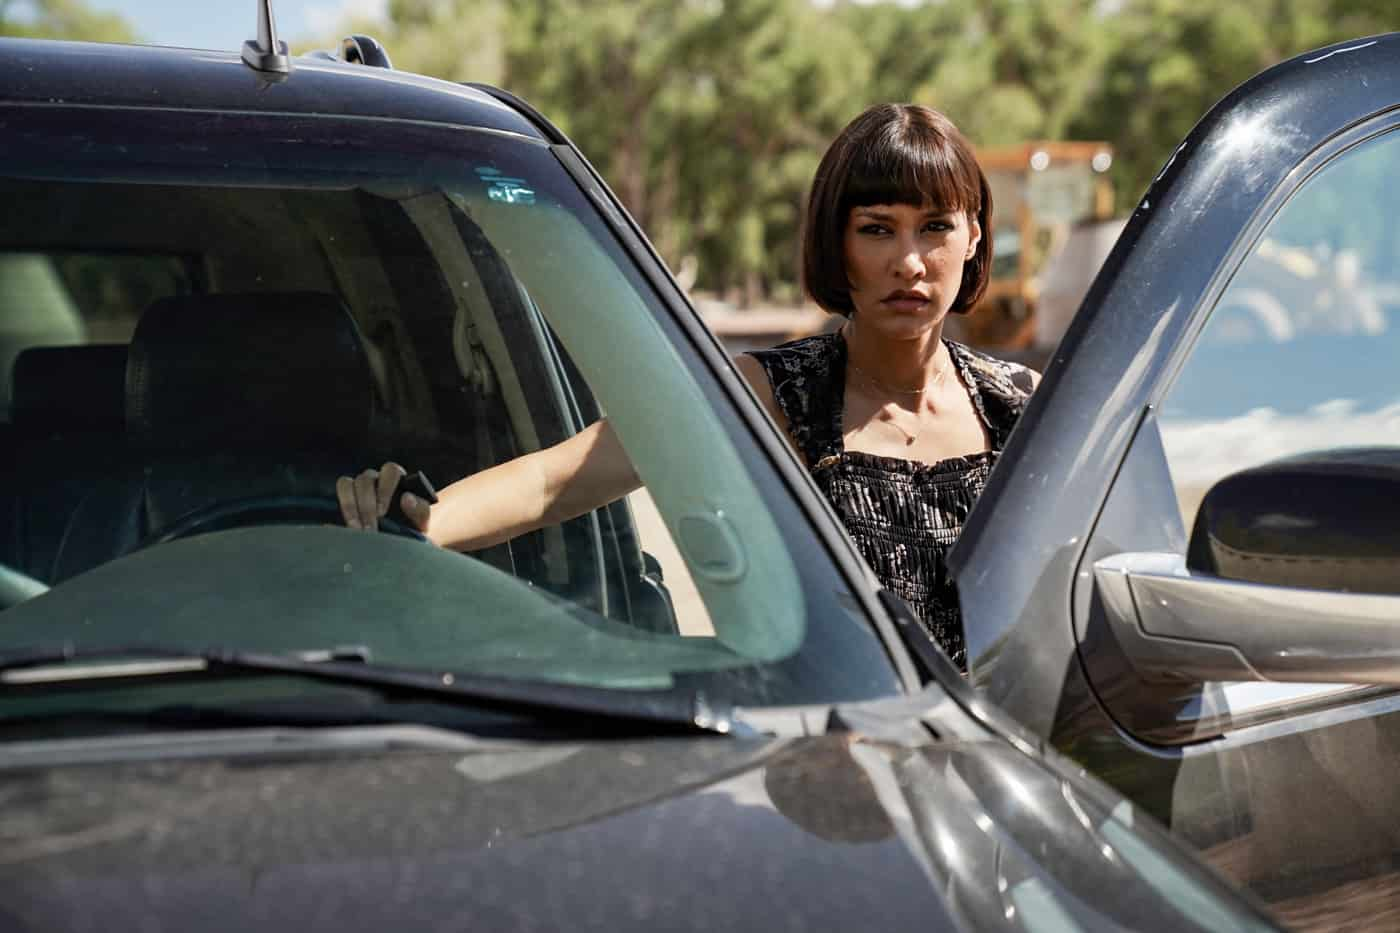 """BIG SKY Season 2 Episode 3 - """"You Have to Play Along"""" – After officially teaming up, Jenny and Cassie sit down with Tubb who reveals that this one goes far beyond their jurisdiction. Realizing Travis may be a man on the inside, Jenny reaches out for intel and learns the cartel is involved. With Tonya still missing, Cassie and Jenny fear the worst and kick their search into high gear. Meanwhile, the kids' plan continues to fall apart, with secrets and scheming threatening to land them in hot water, on an all-new episode of """"Big Sky,"""" THURSDAY, OCT. 14 (10:00-11:01 p.m. EDT), on ABC. (ABC/Michael Moriatis) JANINA GAVANKAR"""